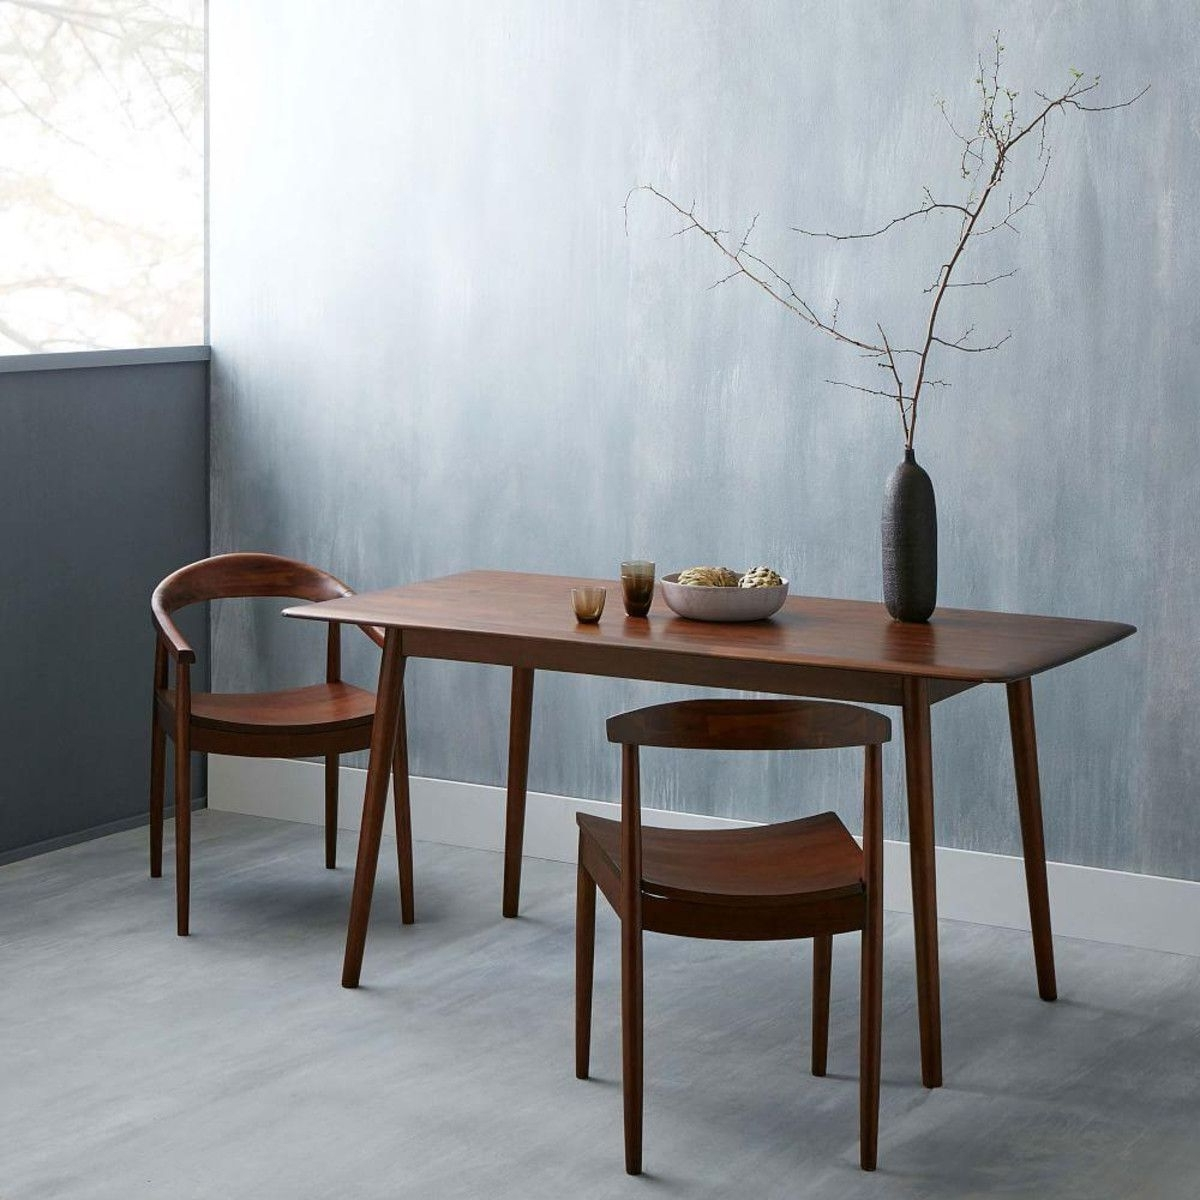 2018 Stunning Modern Dining Table West Elm Sussex Gumtree Chairs Republic Inside Hayden Dining Tables (View 2 of 25)